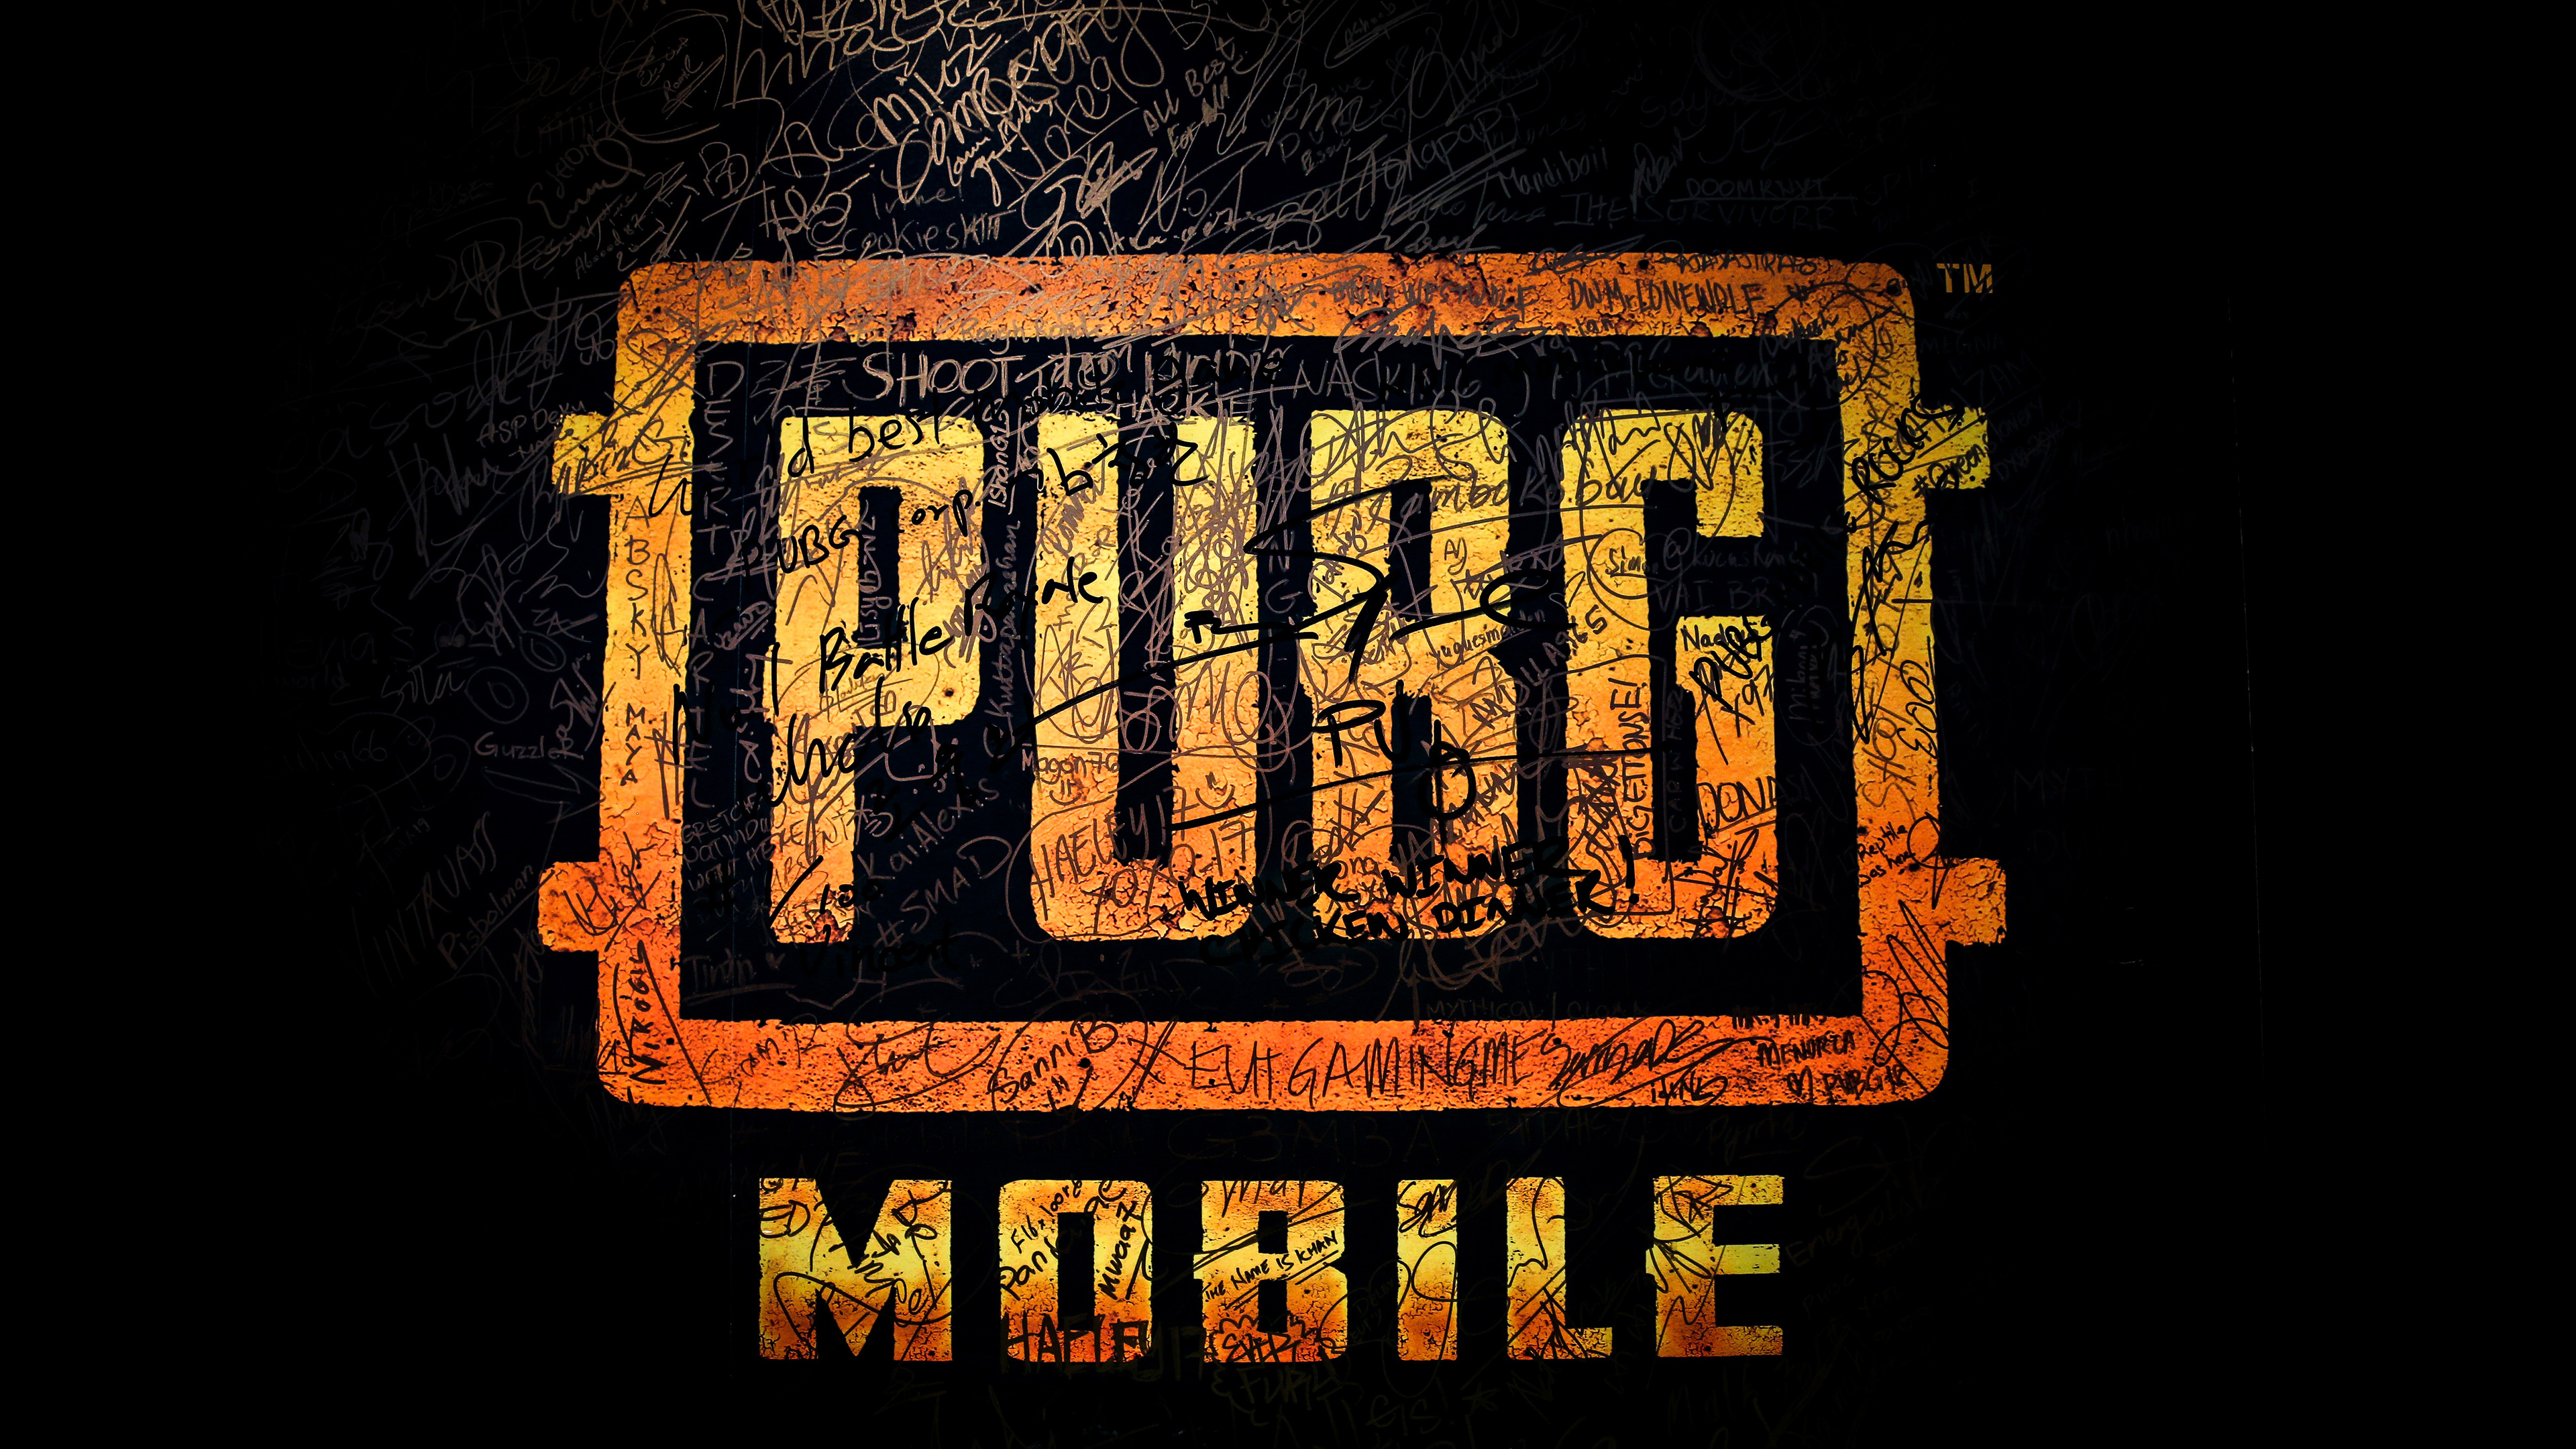 Pubg Chase Wallpaper By Szalkai S: Ultra Hd Pubg Mobile Hd Wallpaper